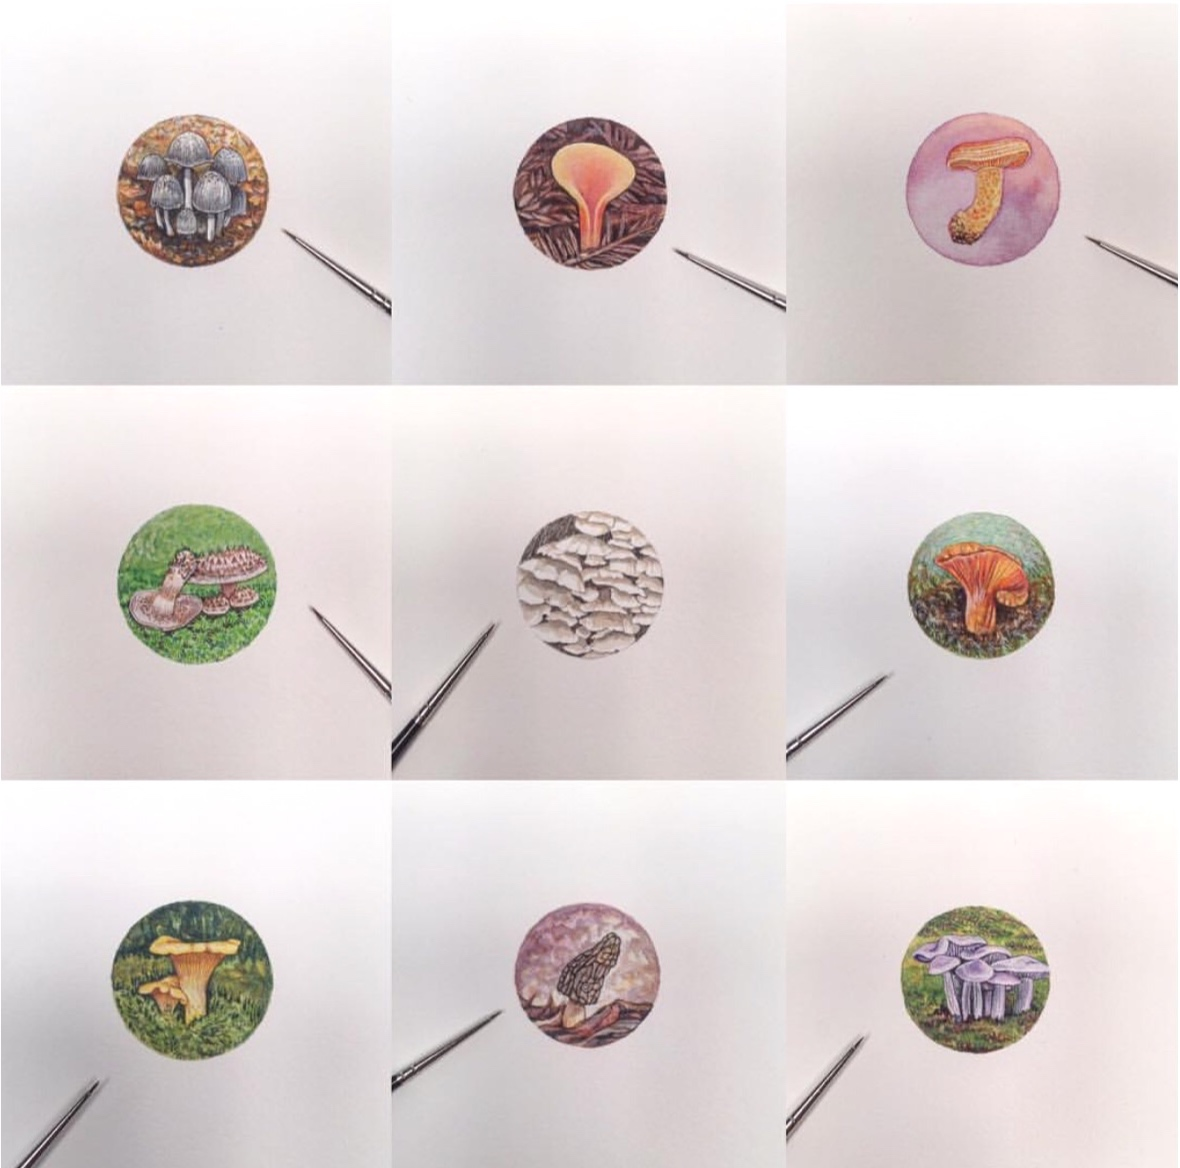 A collection of mushroom miniature paintings by Brooke Rothshank, instagram @blrothshank